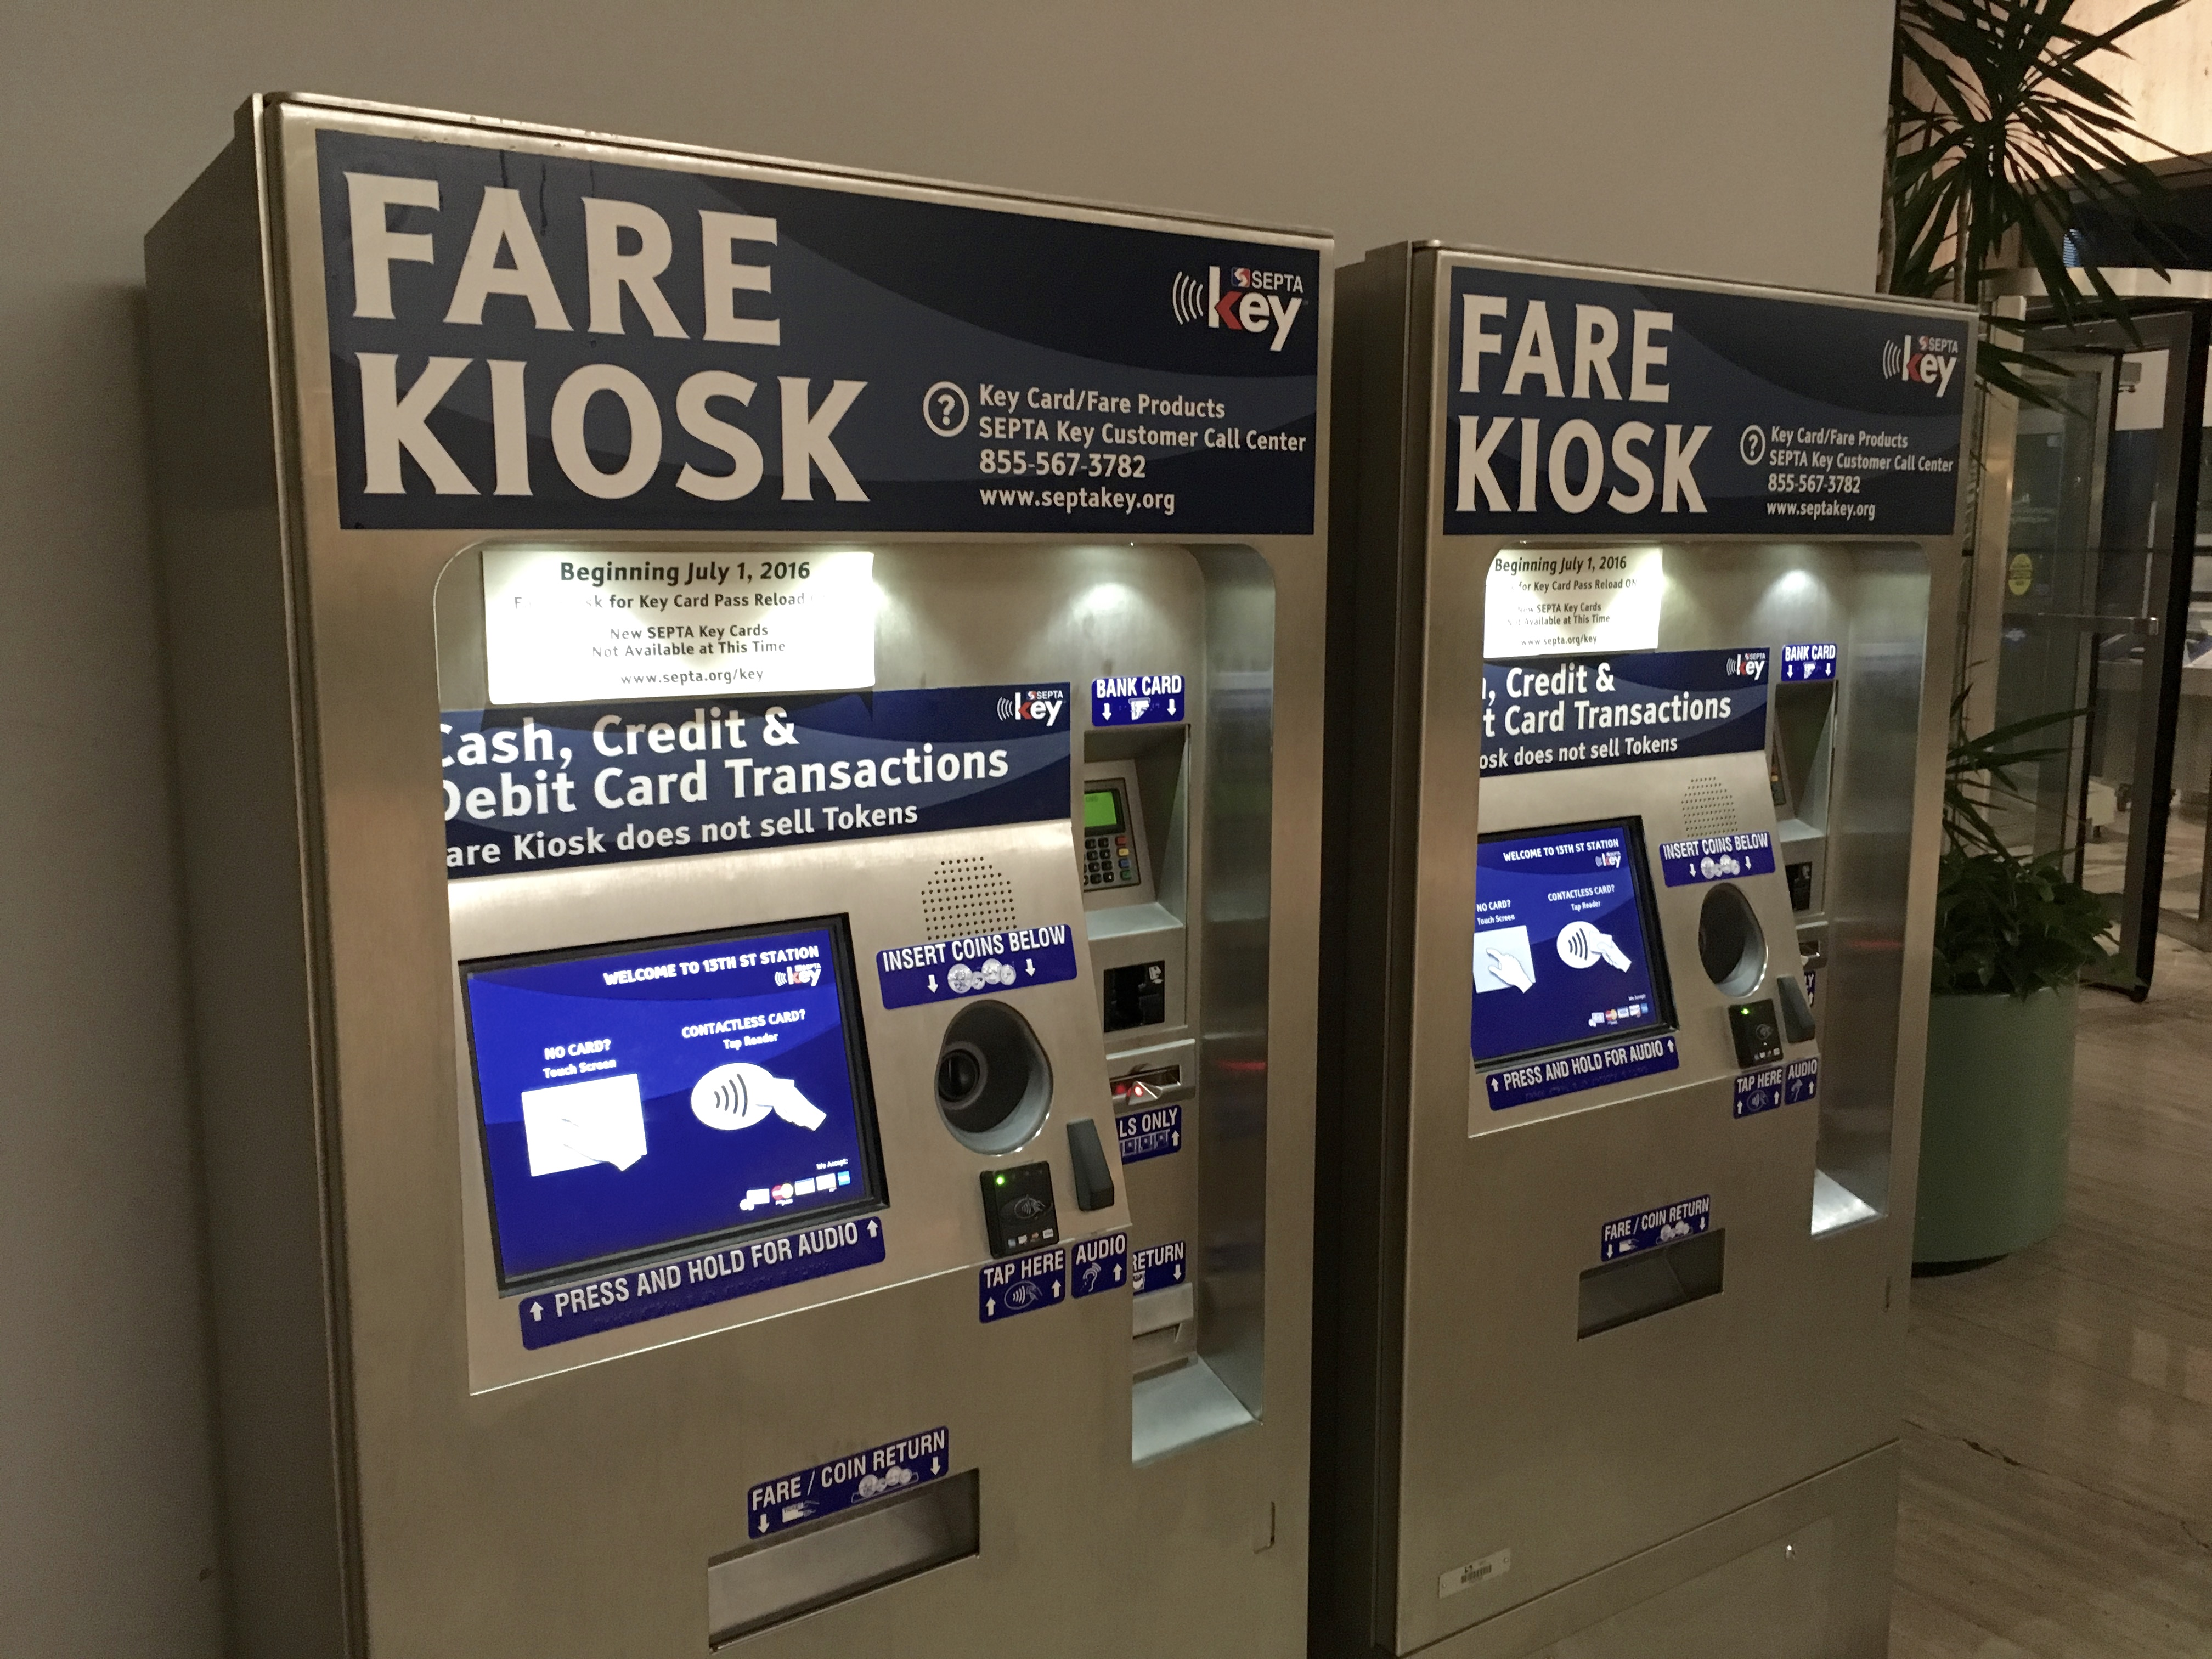 SEPTA Key fare kiosks at 1234 Market